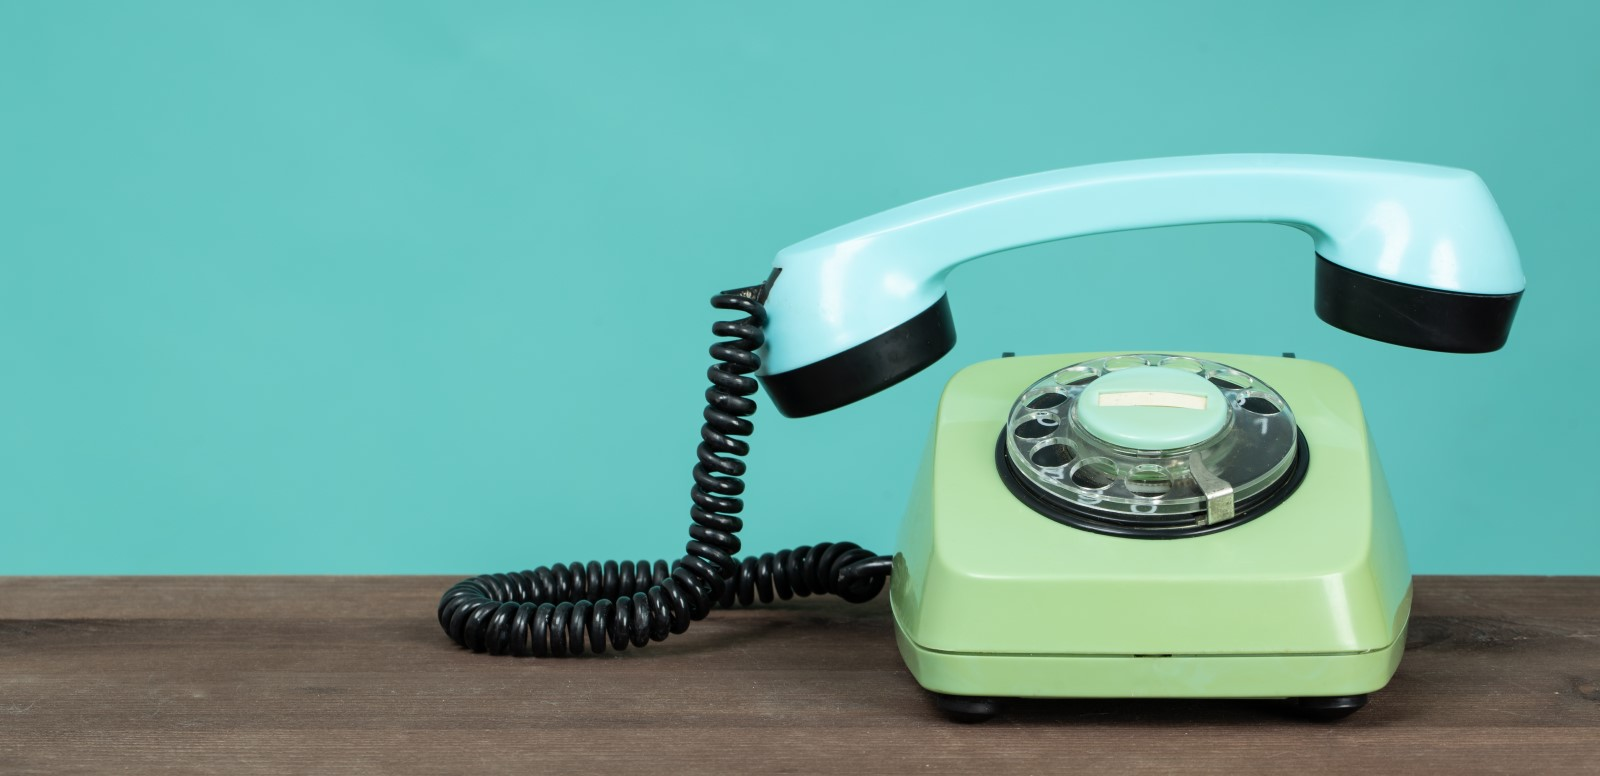 Time to Update Your Customer Service Strategy?